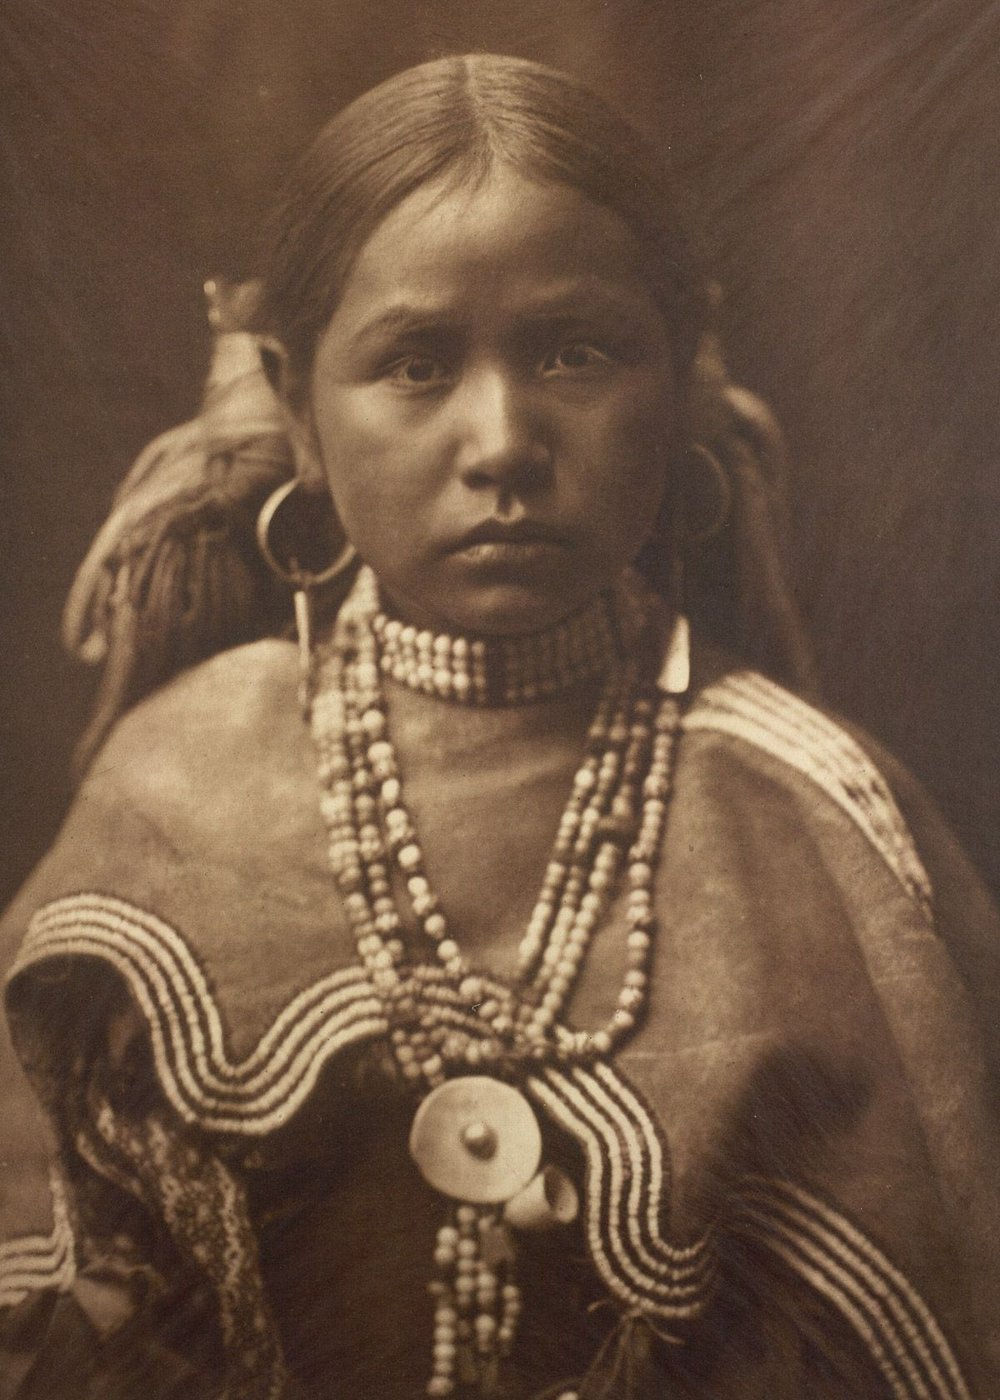 A Jicarrilla girl,  c.1910  ©EDWARD S. CURTIS/SMITHSONIAN INSTITUTION